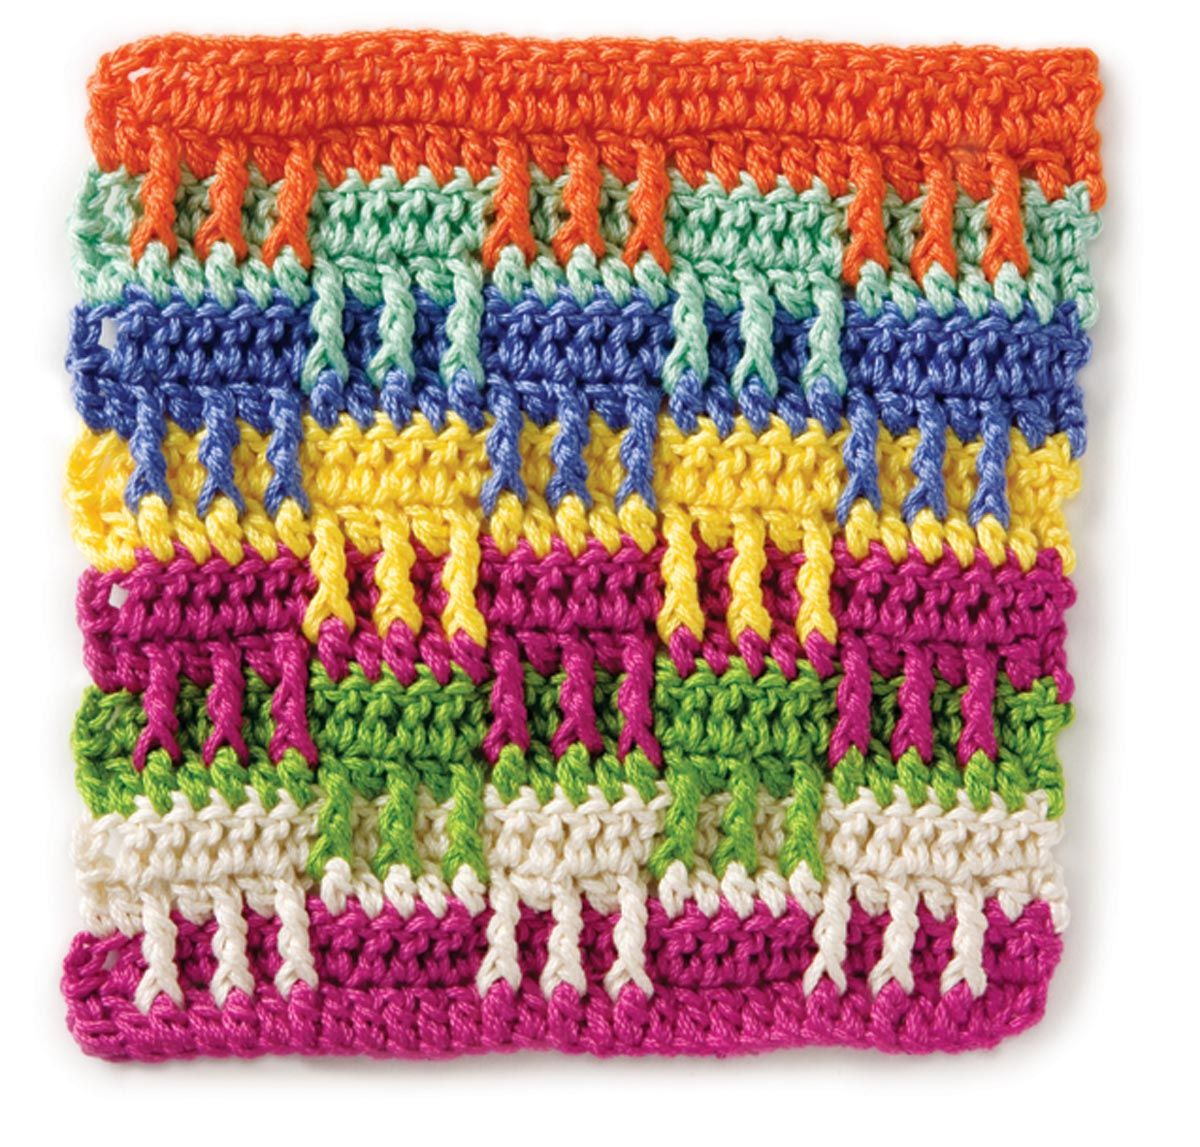 Stitchfinder : Crochet Stitch: Playblocks : Frequently-Asked Questions (FAQ) about Knitting and Crochet : Lion Brand Yarn